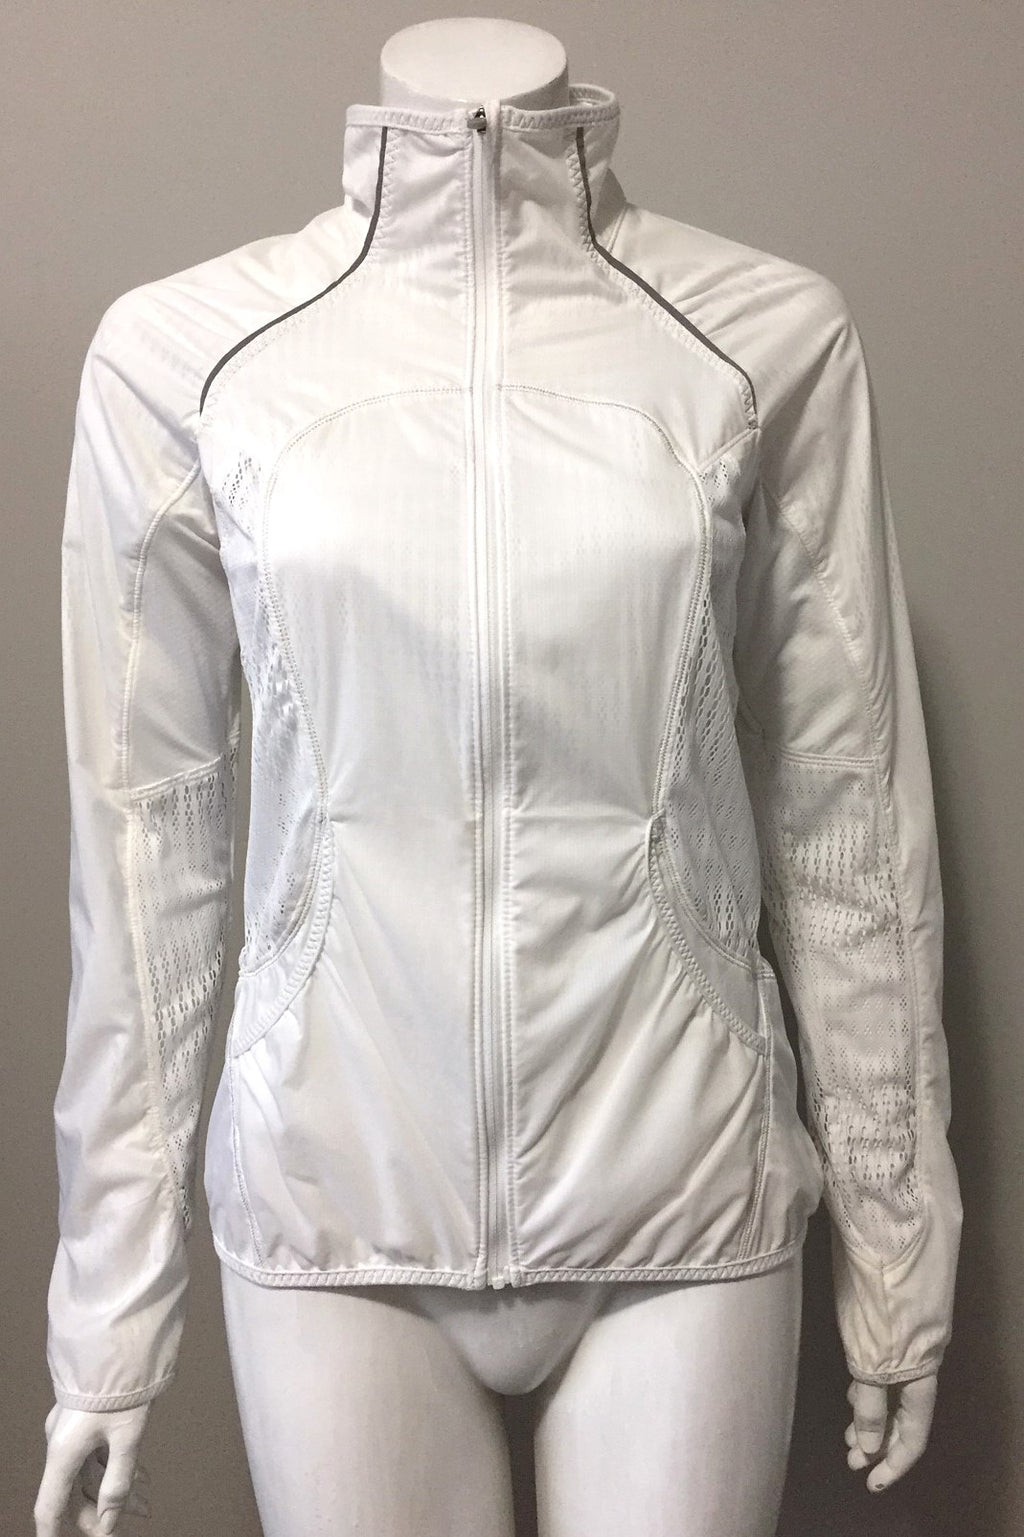 Lululemon White Mesh Running Jacket Size 6